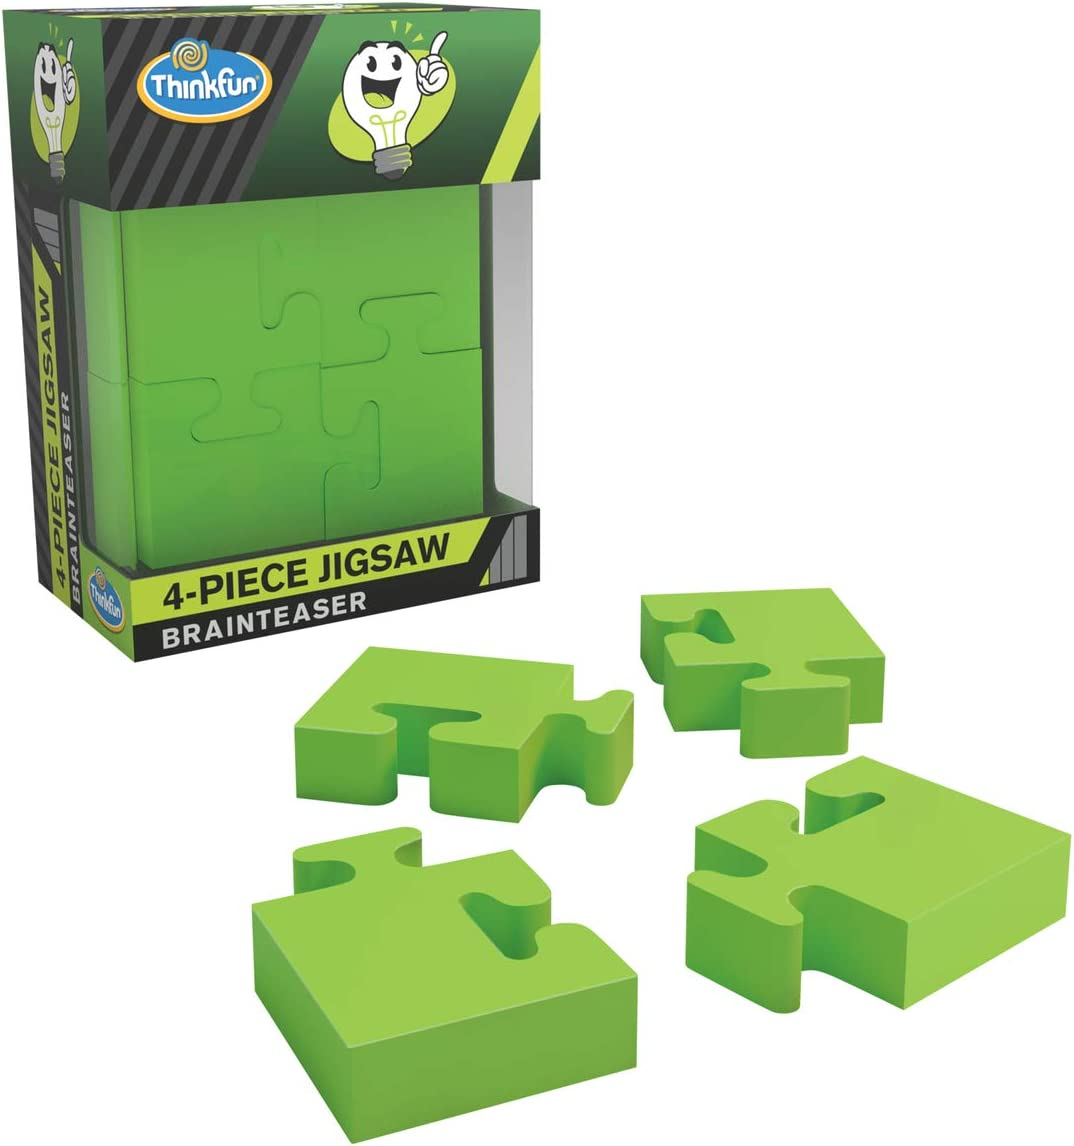 ThinkFun Pocket Brainteasers 4-Piece Jigsaw STEM Toy and Logic Game for Boys and Girls Age 8 and Up - A Tiny brainteaser That's Lots of Fun!